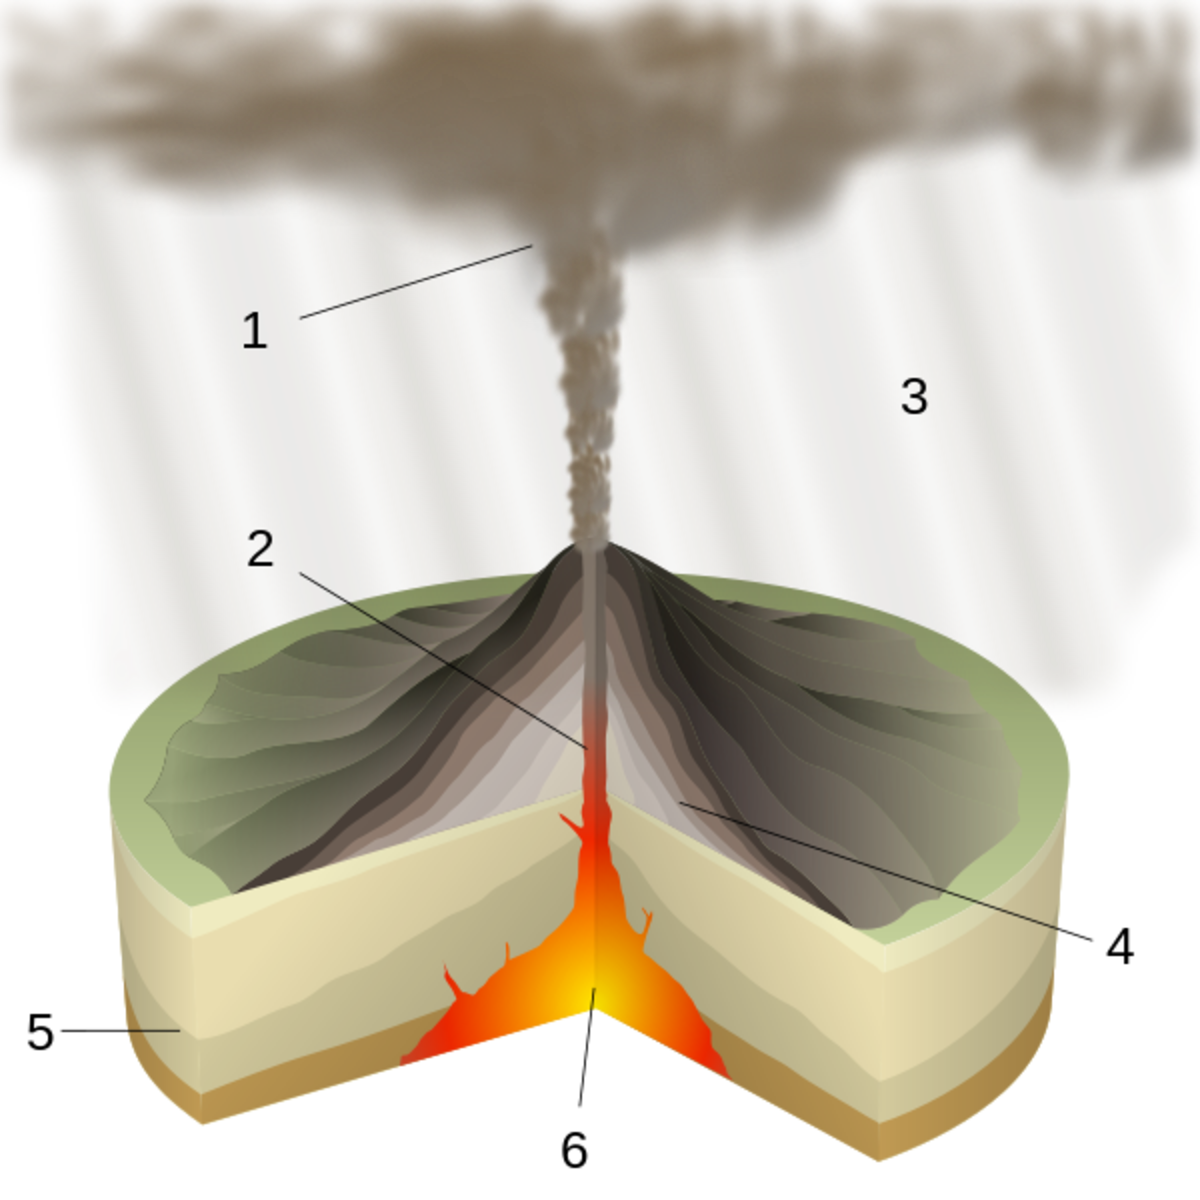 This diagram illustrates the structure of a typical volcano.